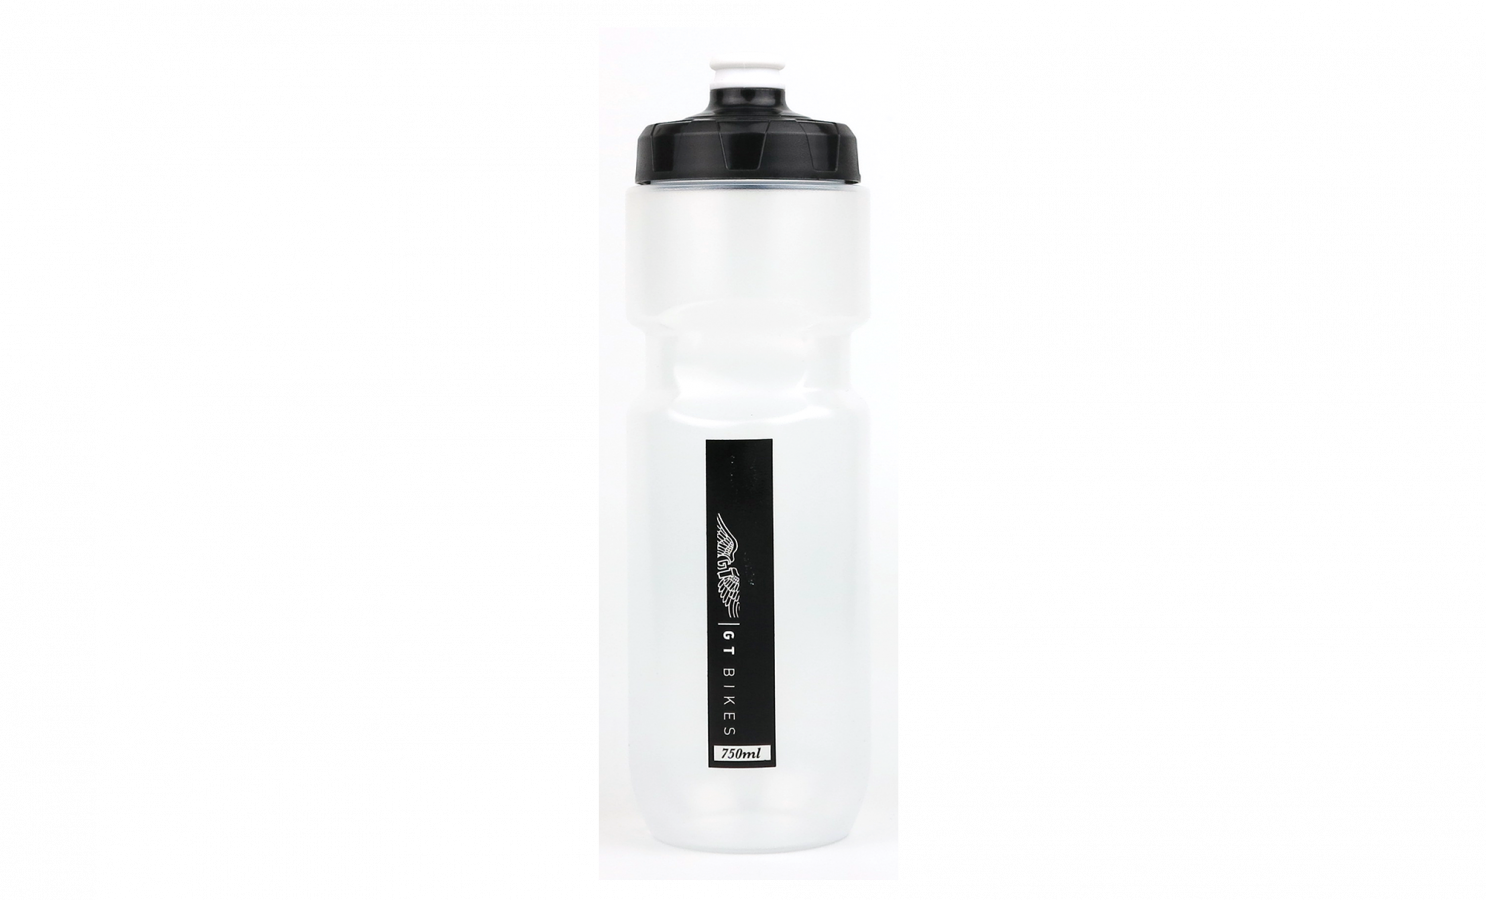 GT BOTTLE 750ML, LARGE CAP, CLEAR & BLACK STRIP -